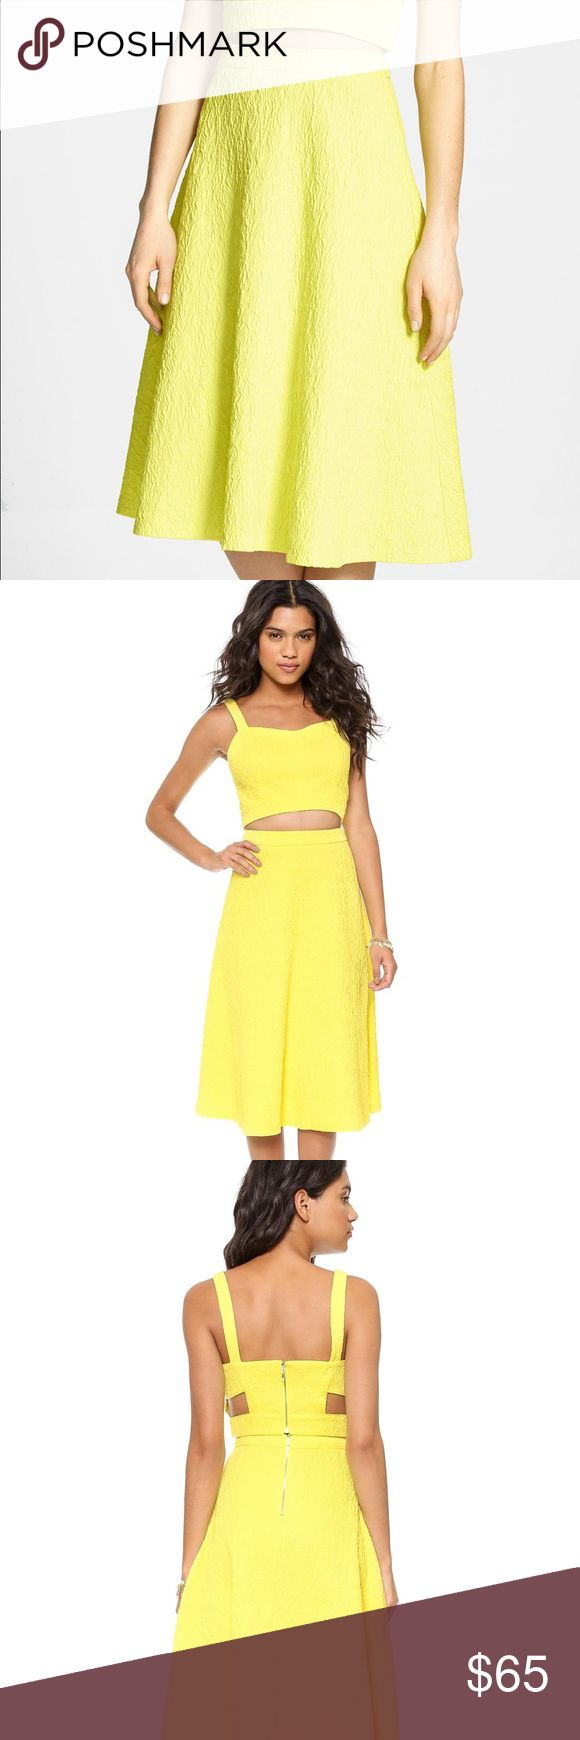 J.O.A. Neon Yellow Textured Crop Top & Midi Skirt J.O.A Los Angeles - Textured neon yellow crop top (size M) & midi skirt (size XS). Bought as a set, but will sell as separates. 👉Make an offer! 👈 NEVER WORN w/ Tags! From smoke-free, pet-free home. J.O.A. Los Angeles Skirts Midi